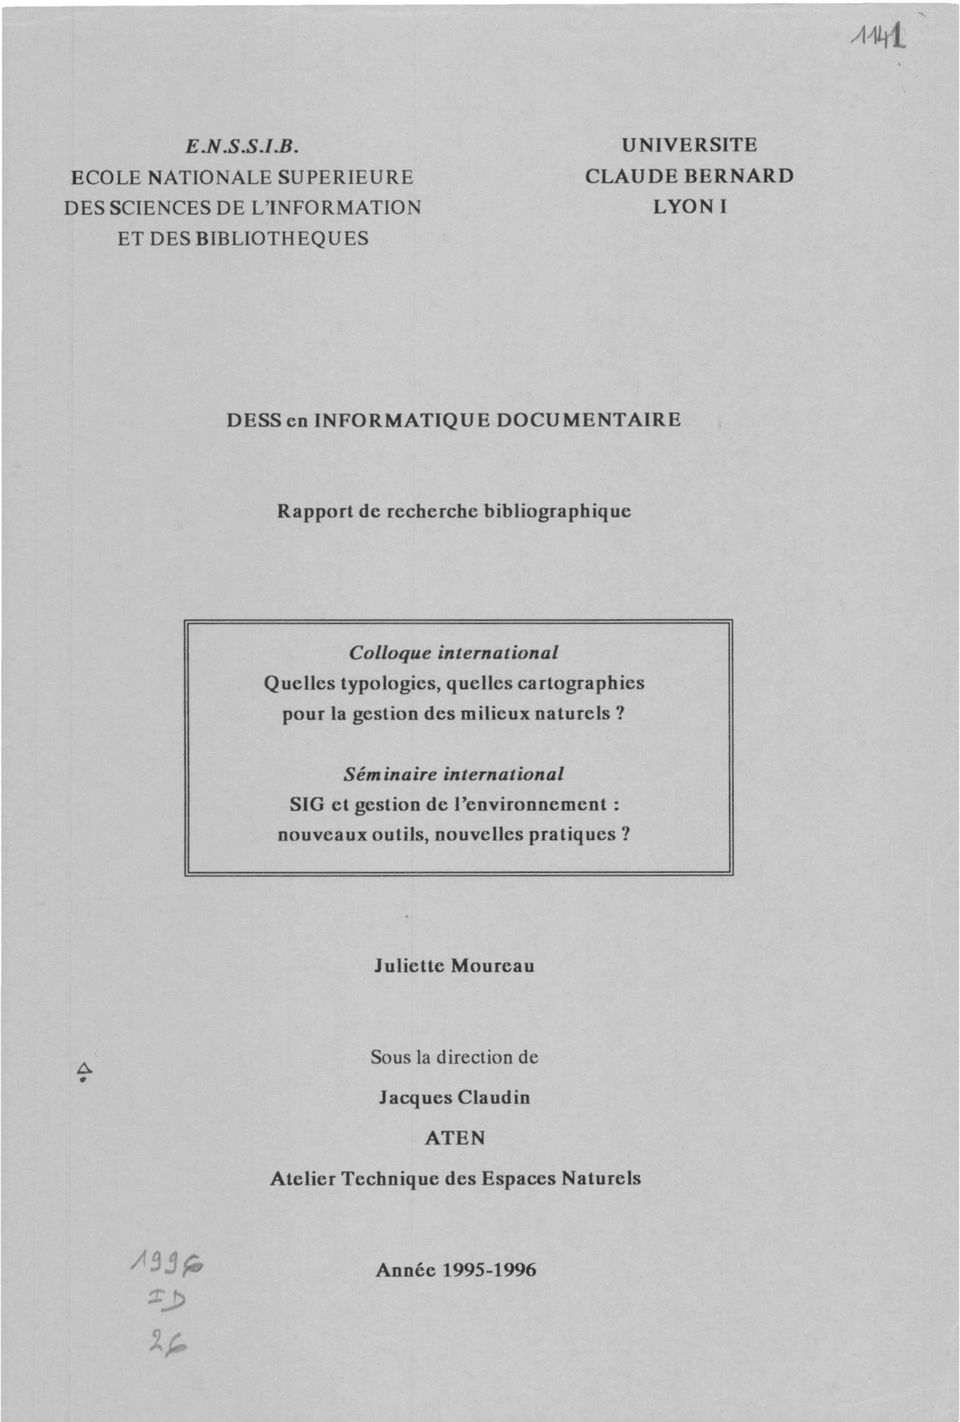 INFORMATIQUE DOCUMENTAIRE Rapport de recherche bibliographique Colloque international Quelles typologies, quellcs cartographies